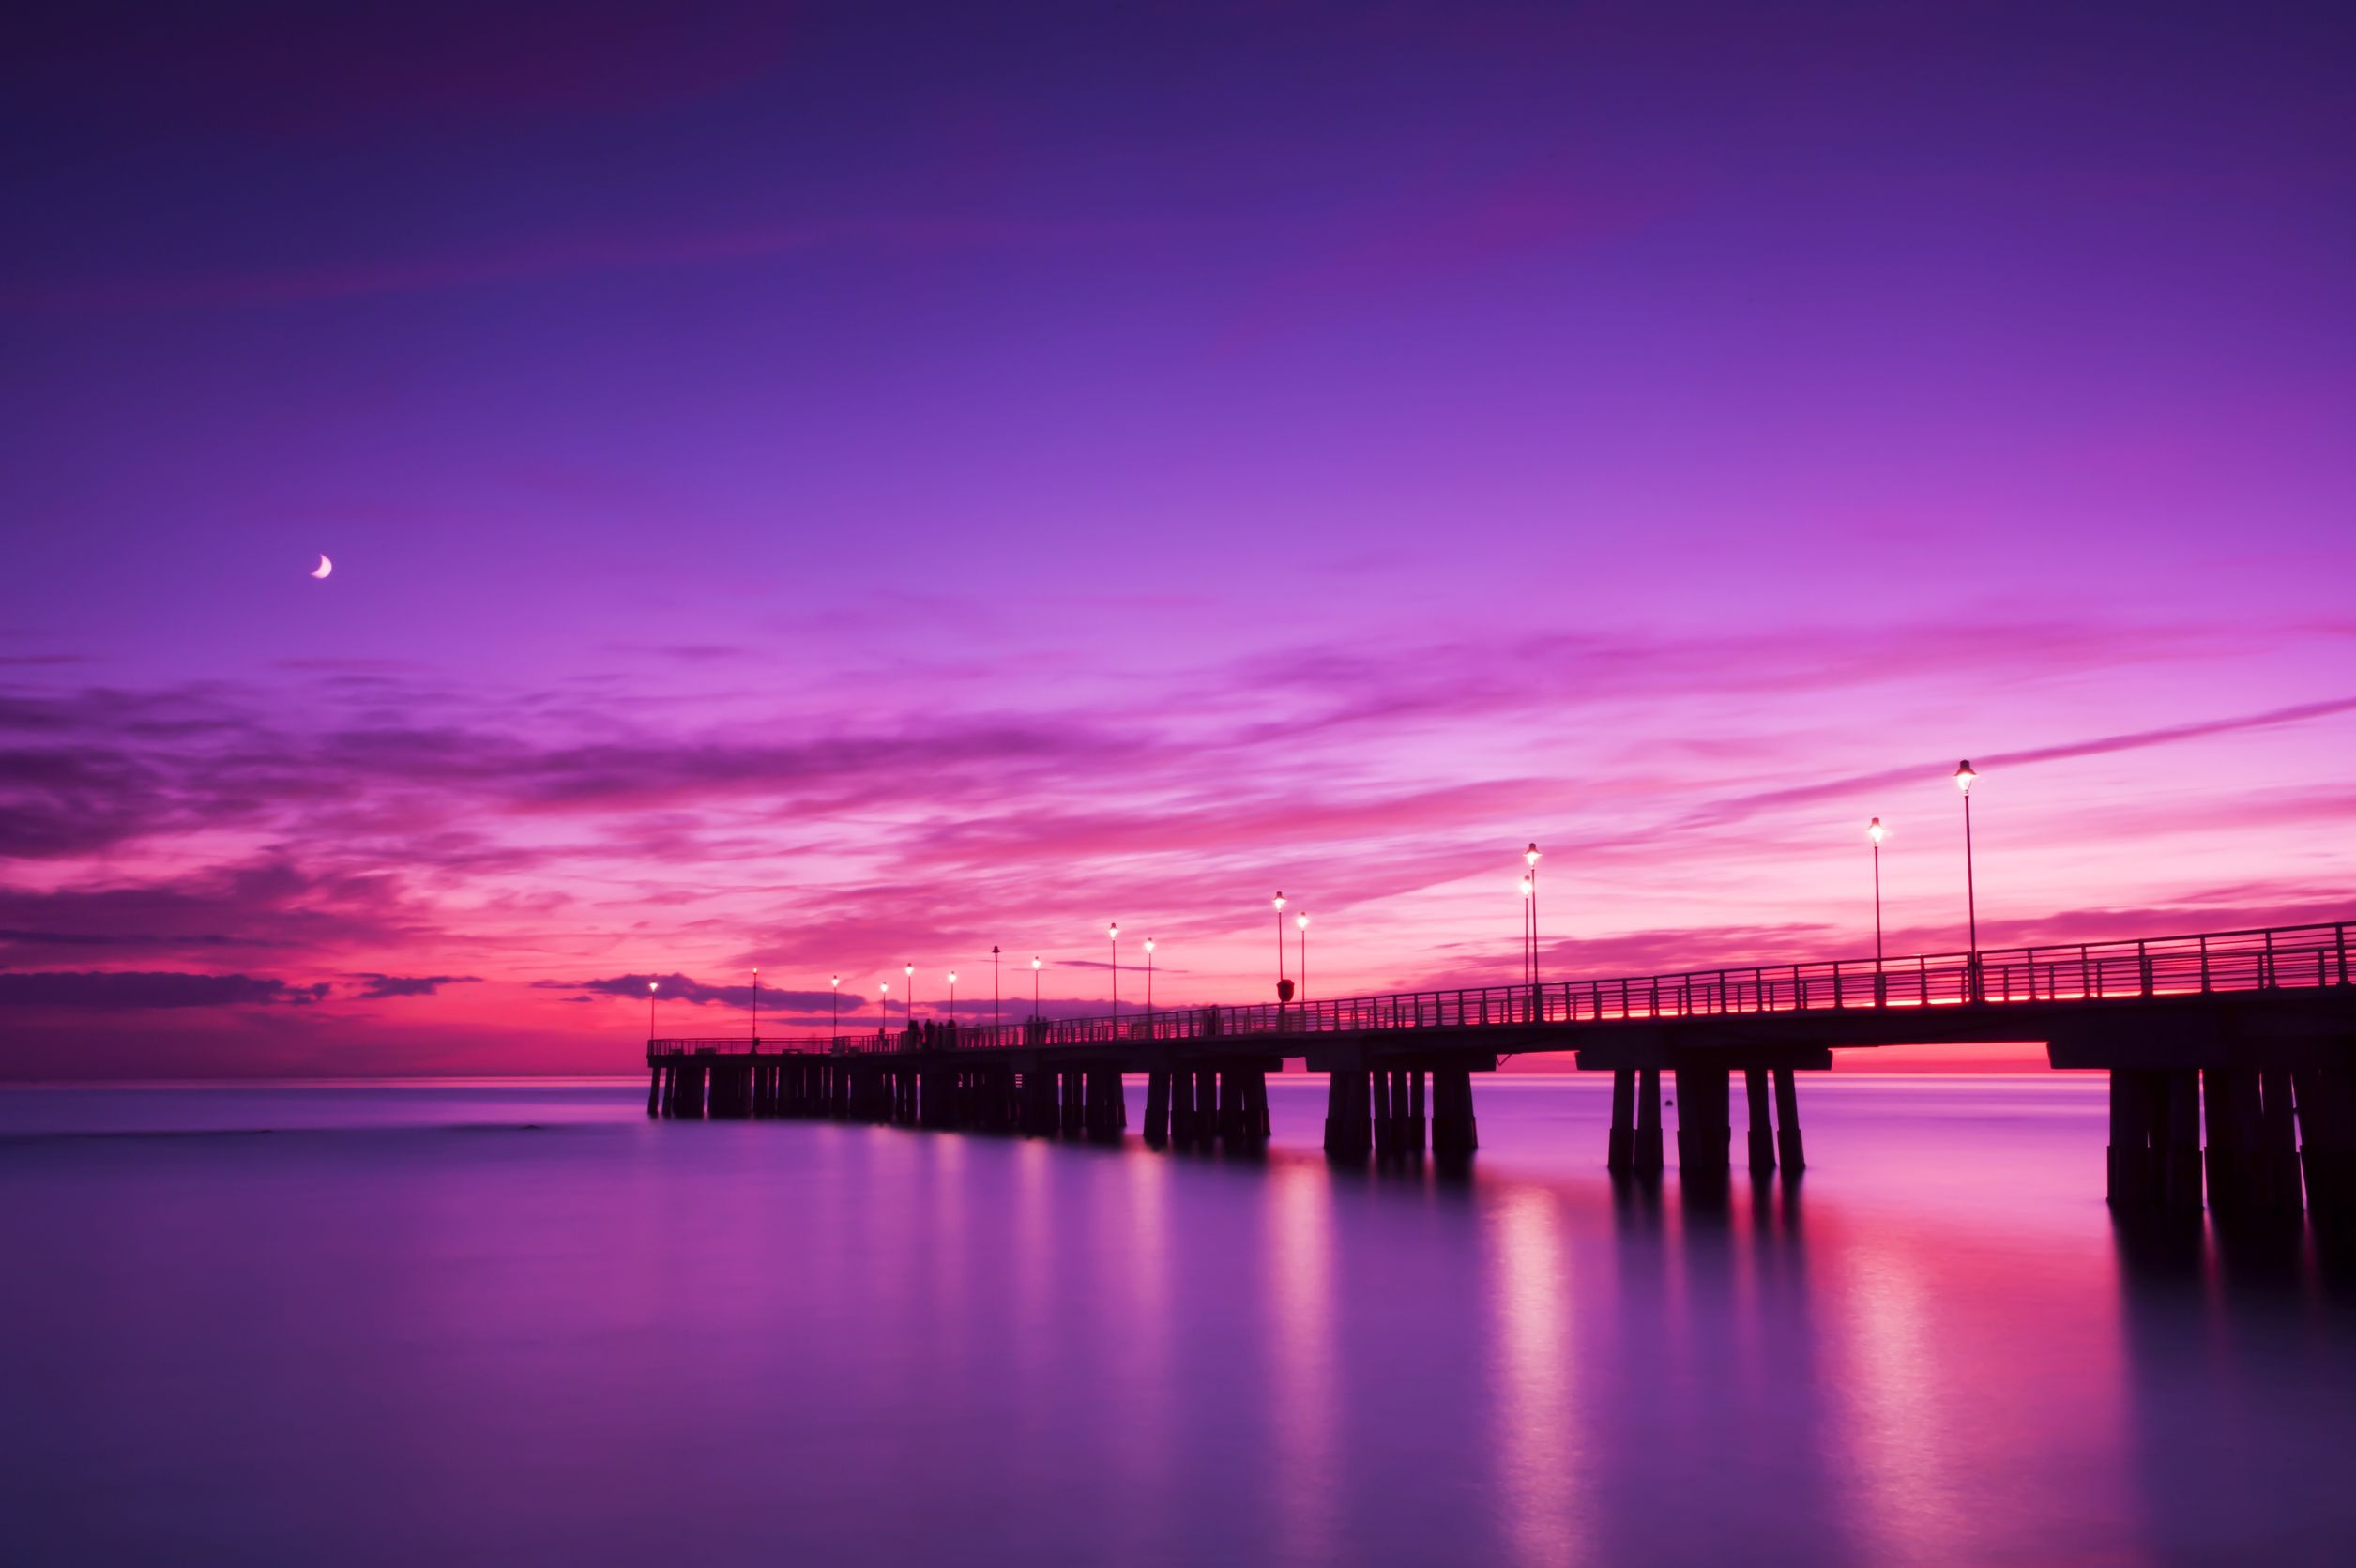 australia sunset dock 123rf